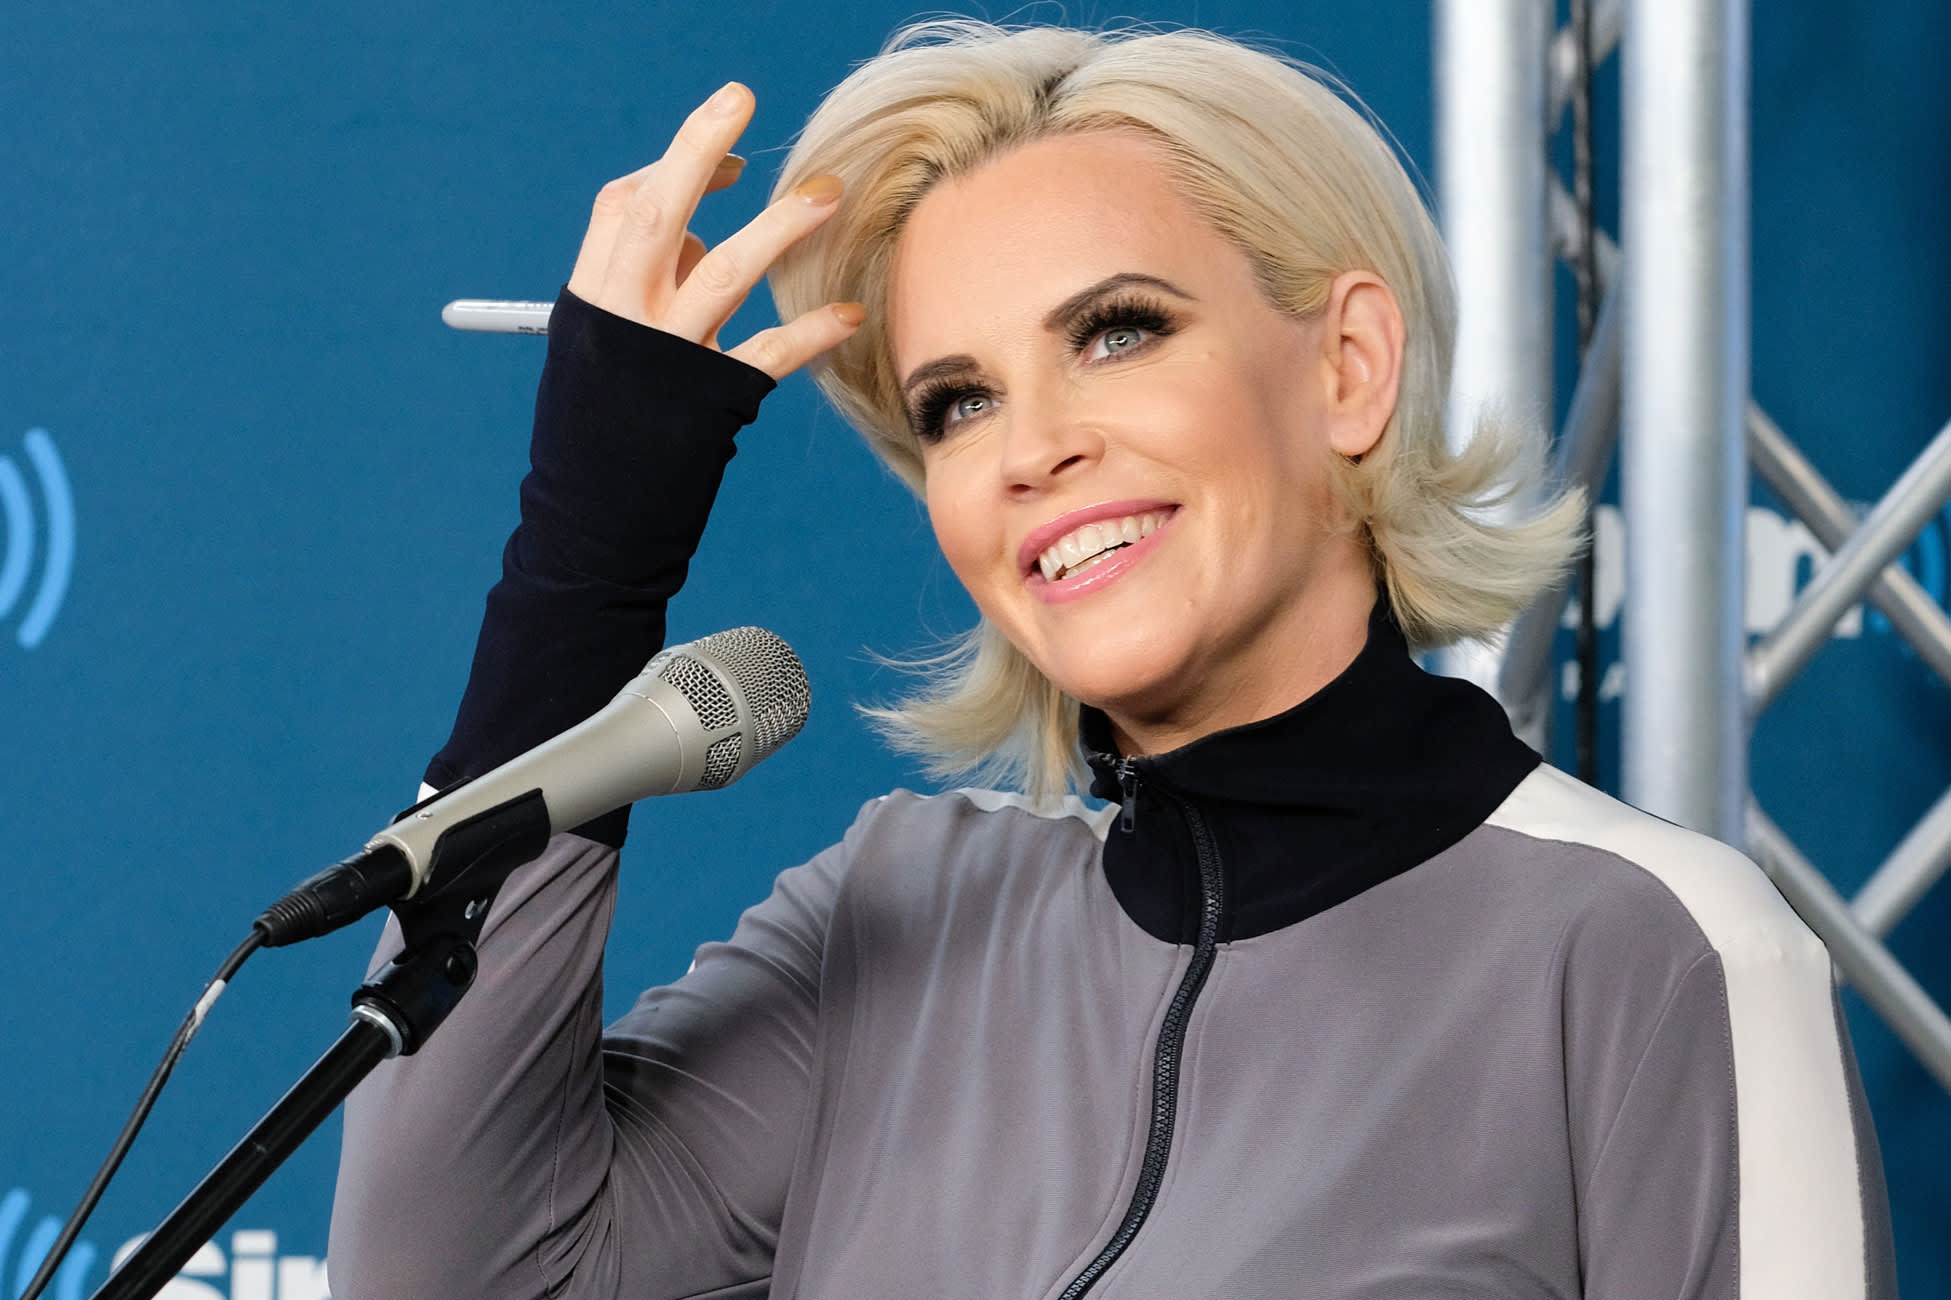 Jenny Mccarthy Talks To Cnbc About Autism And Her Family